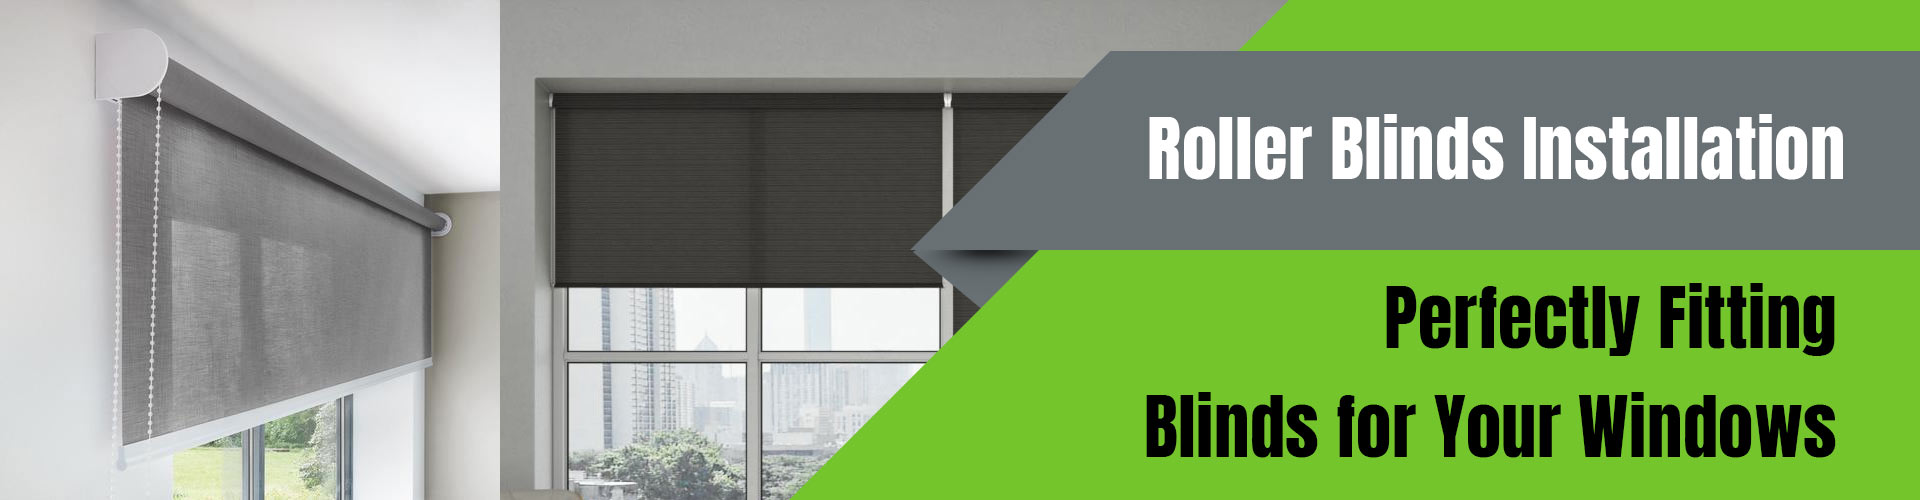 Roller Blinds Installation Melbourne